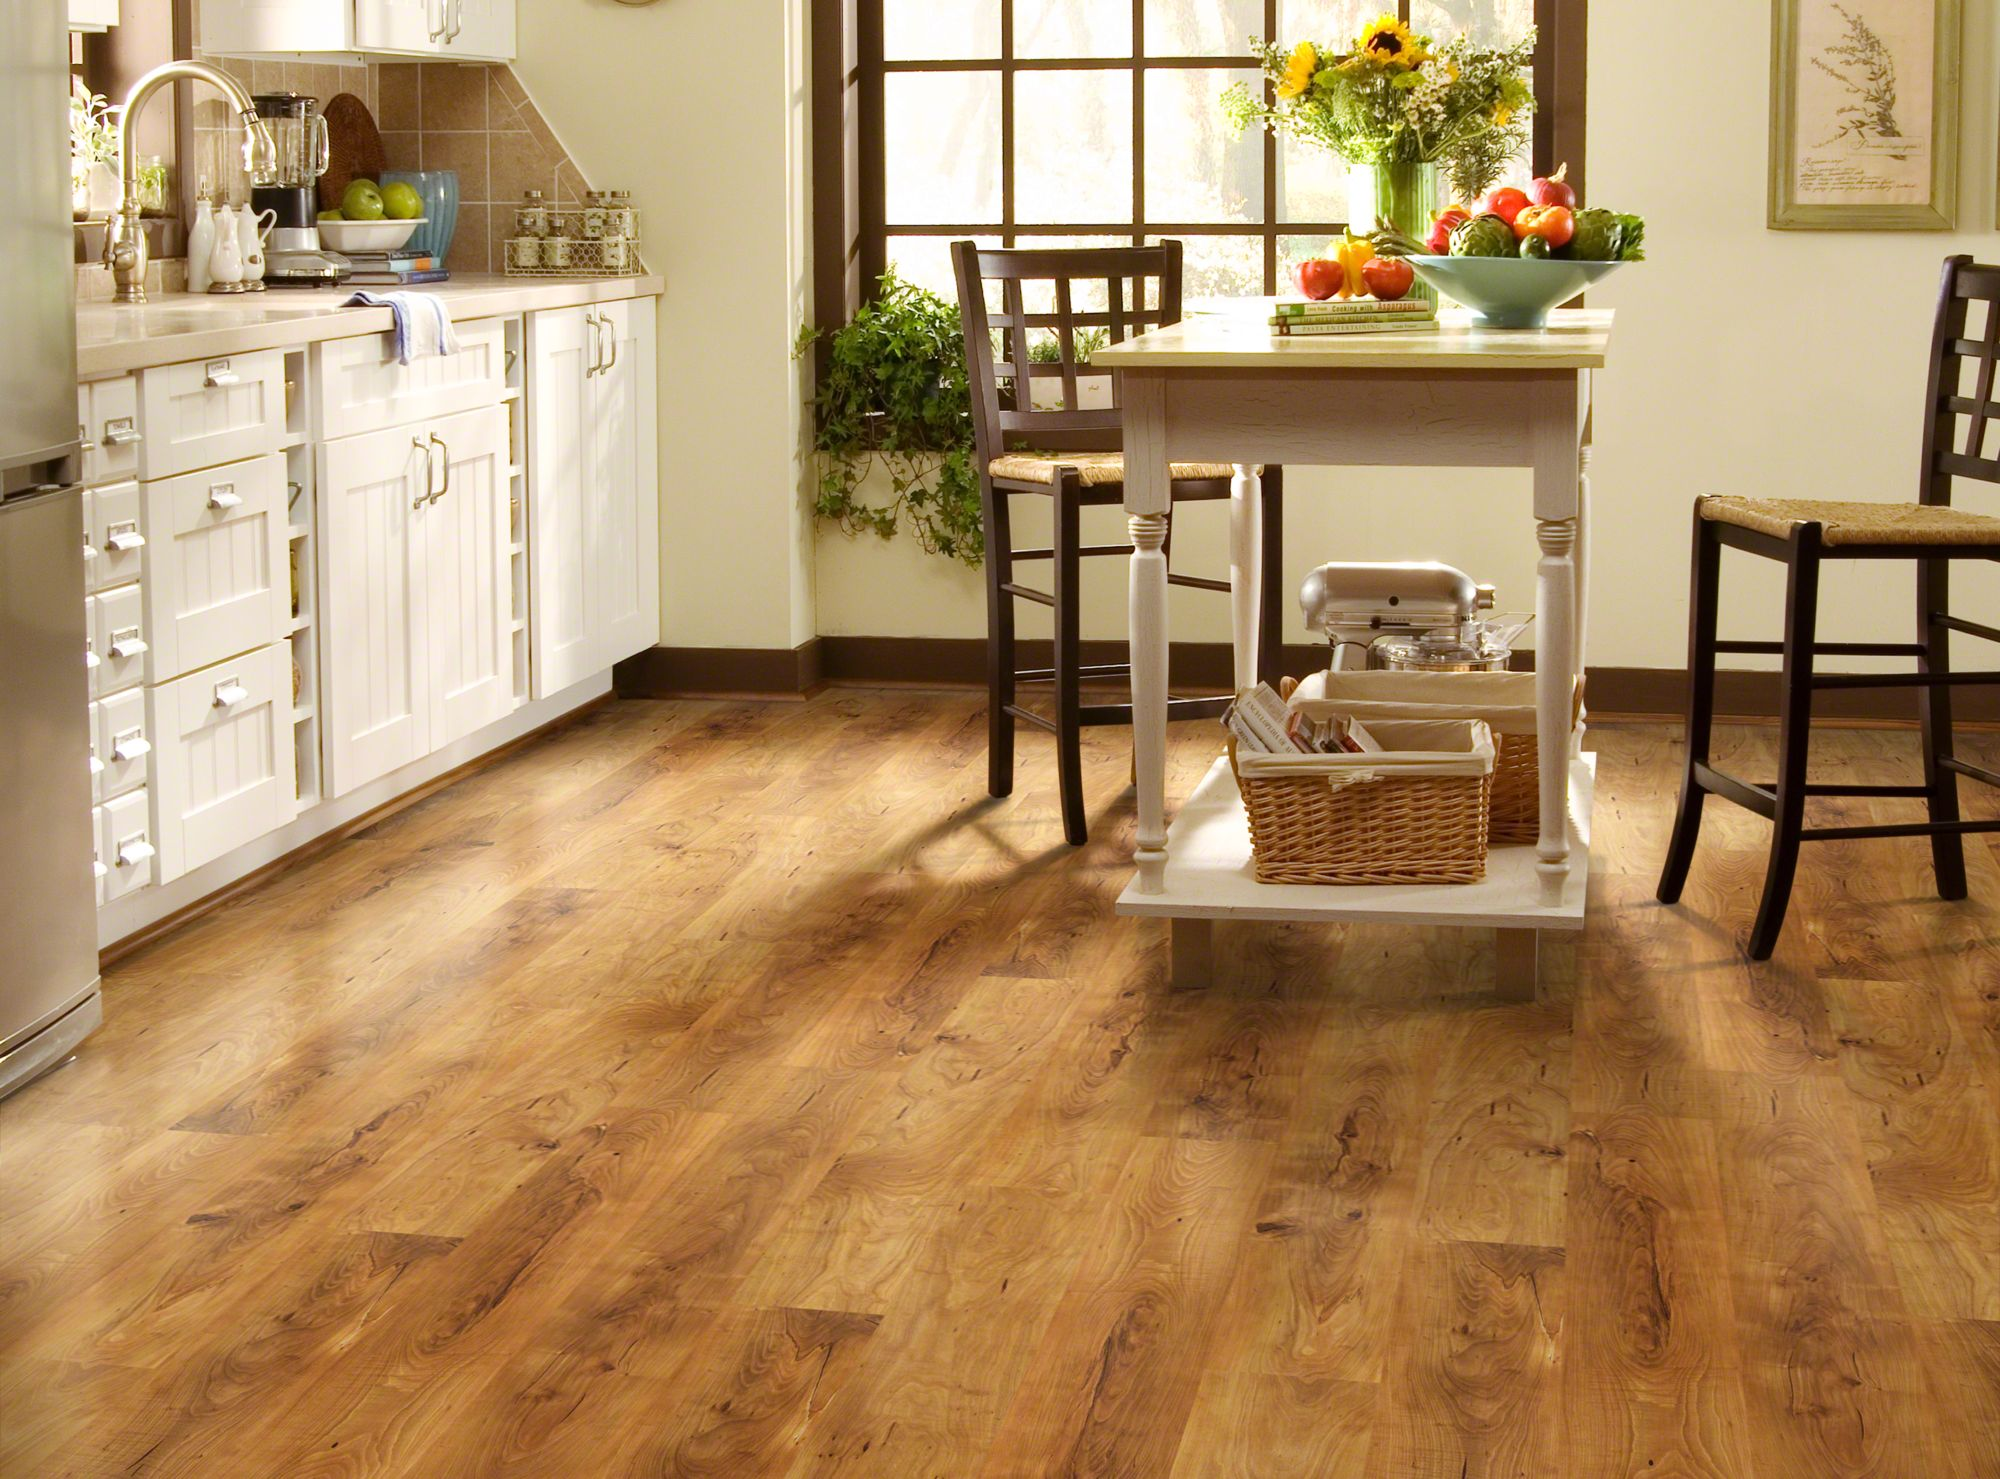 Laminate flooring options laminate floors underlayment options rclijxr BNTEGMM